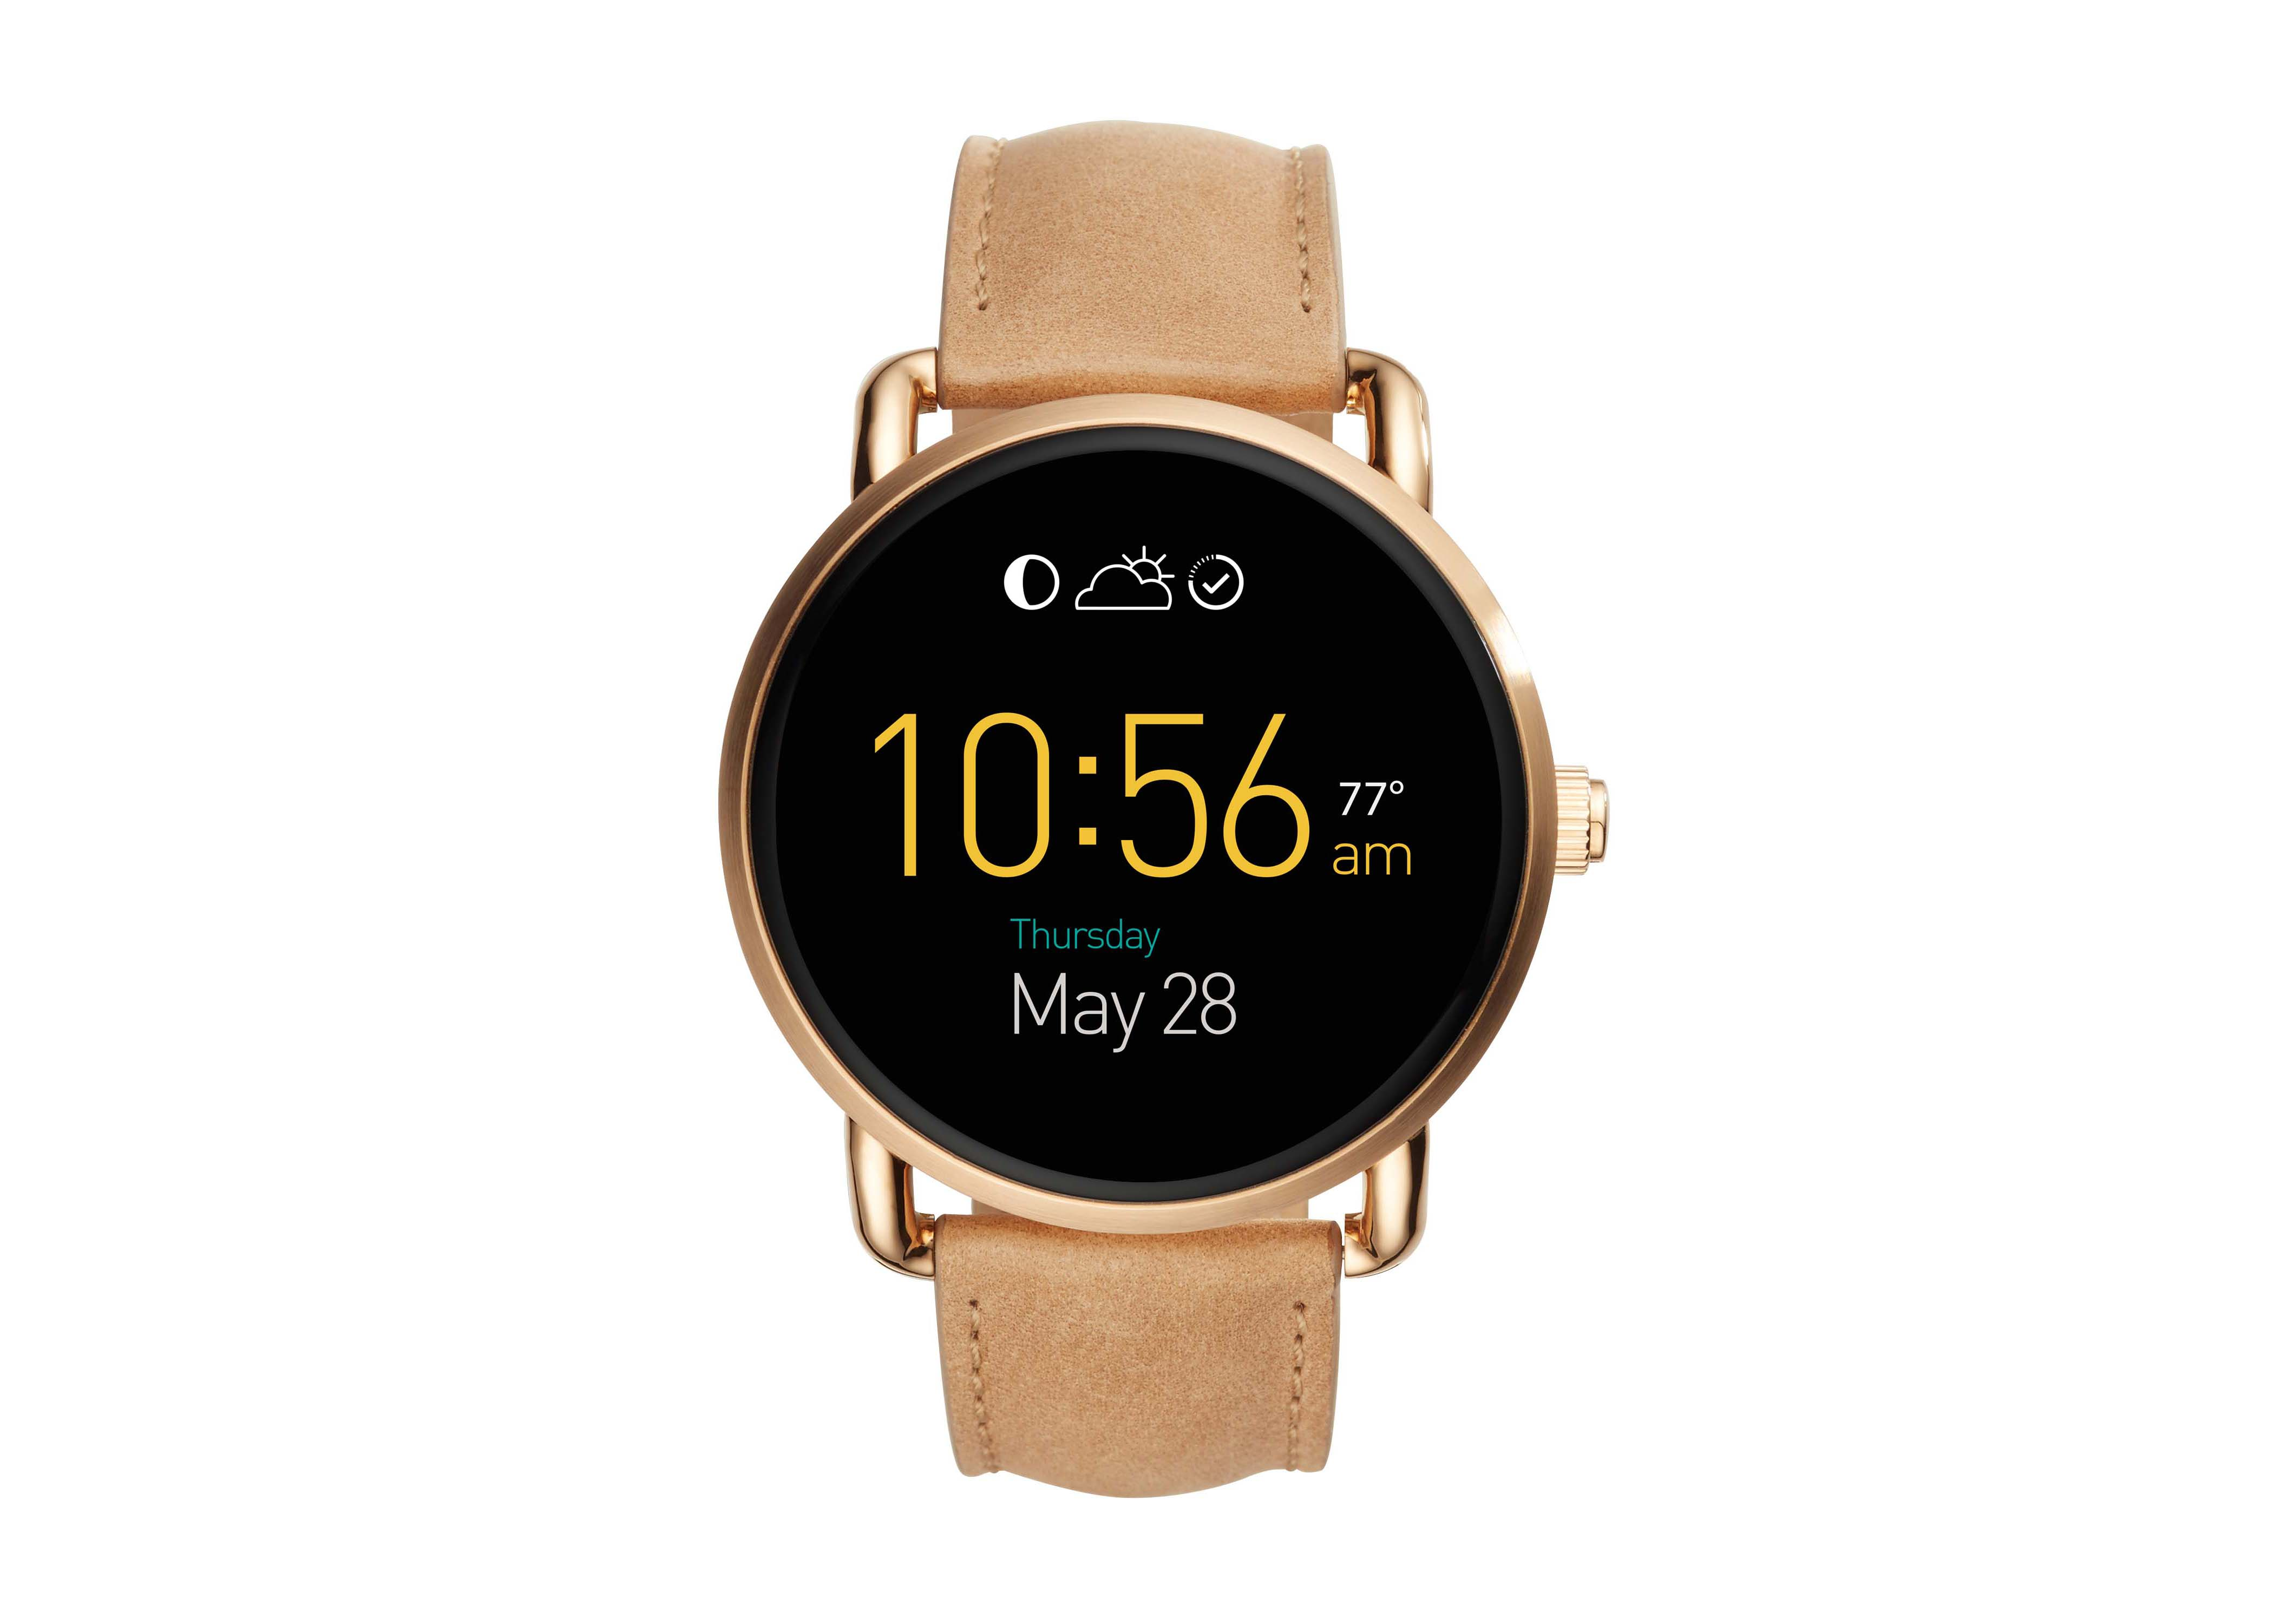 Fossil adds two new watches to its Android Wear lineup